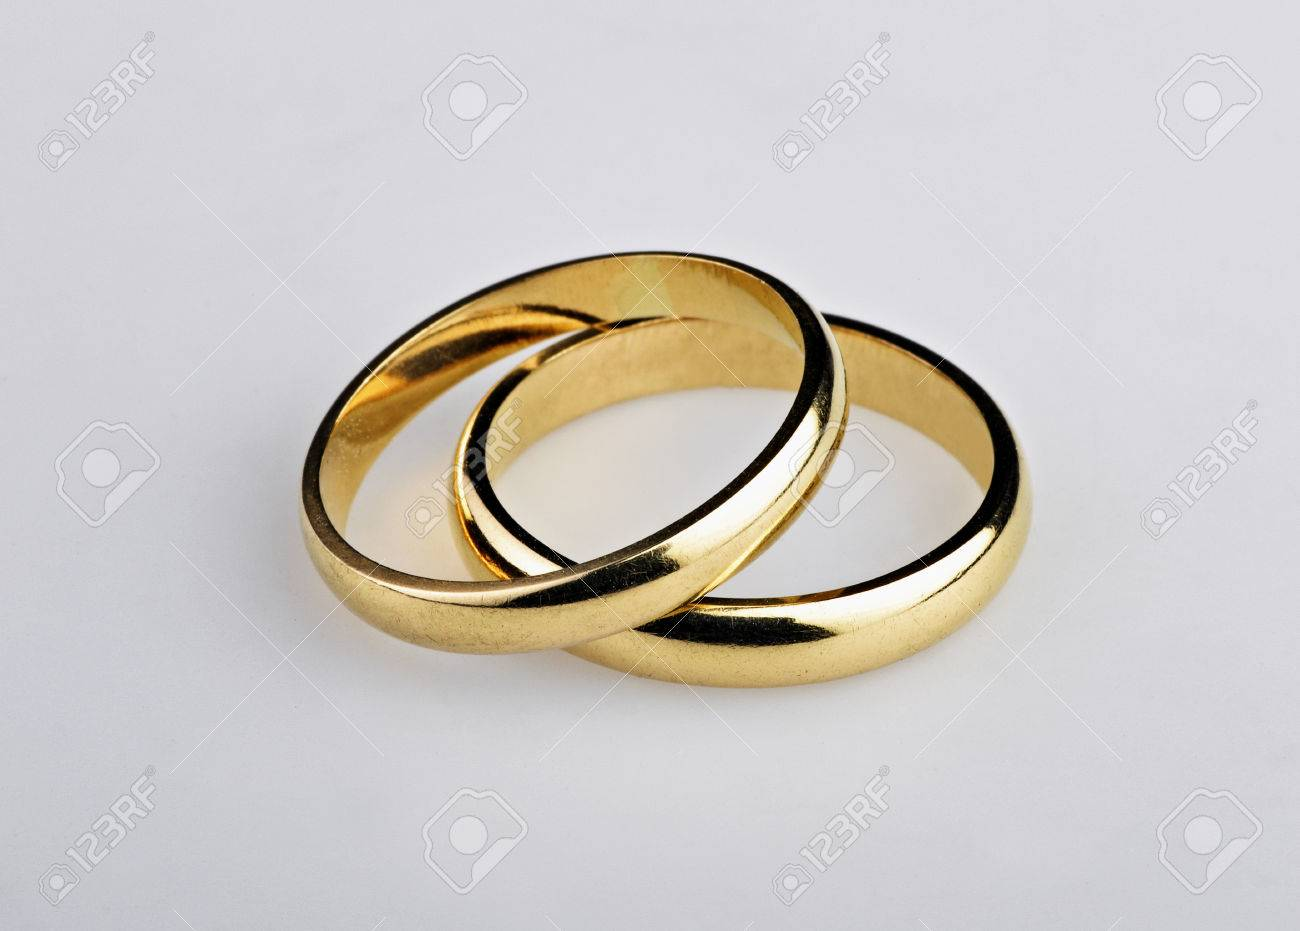 Used Wedding Rings.Two Well Used Golden Wedding Rings On Gray Background